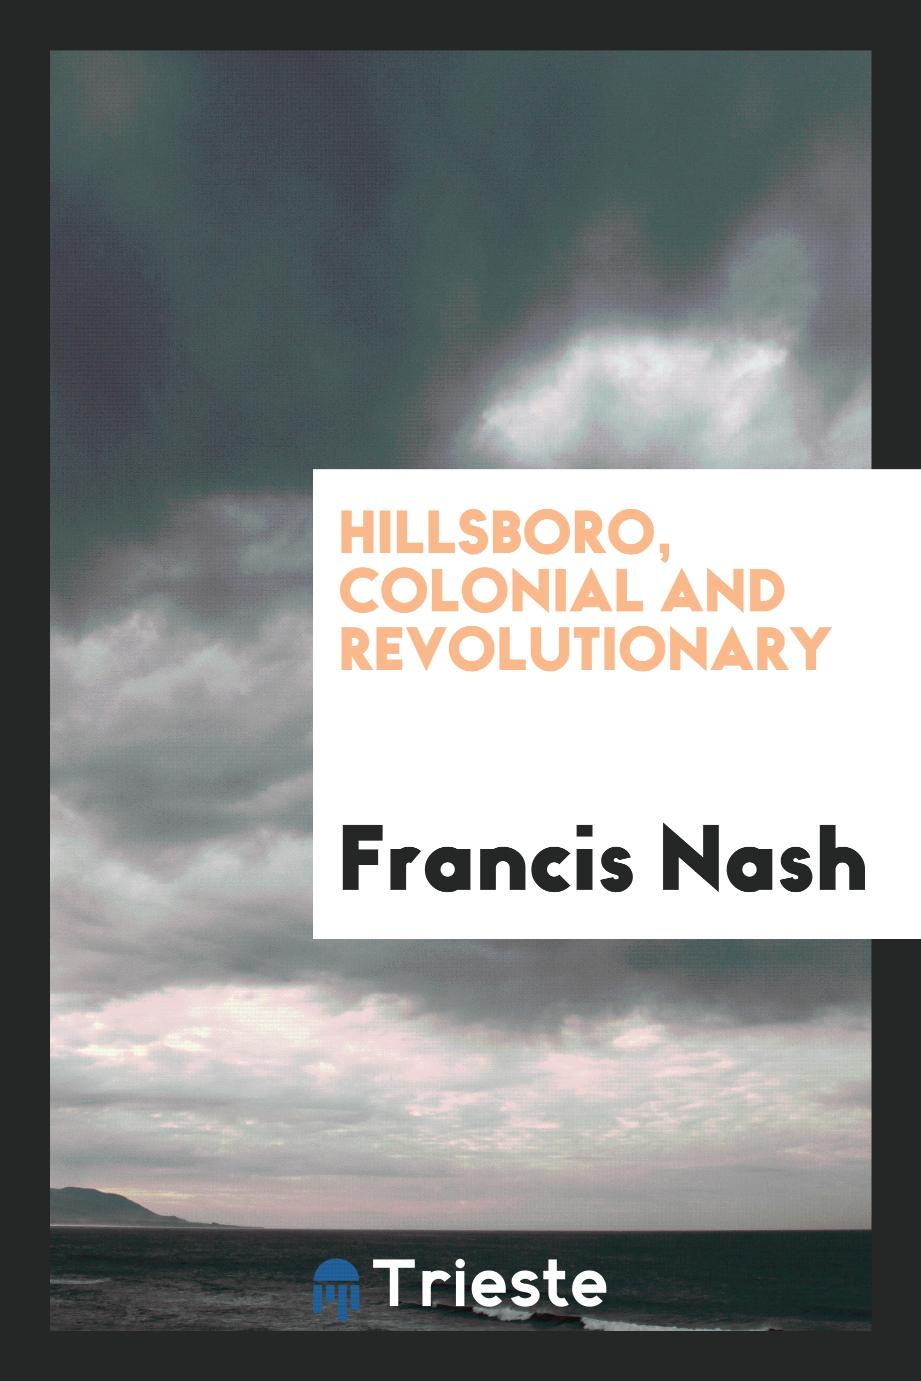 Hillsboro, Colonial and Revolutionary